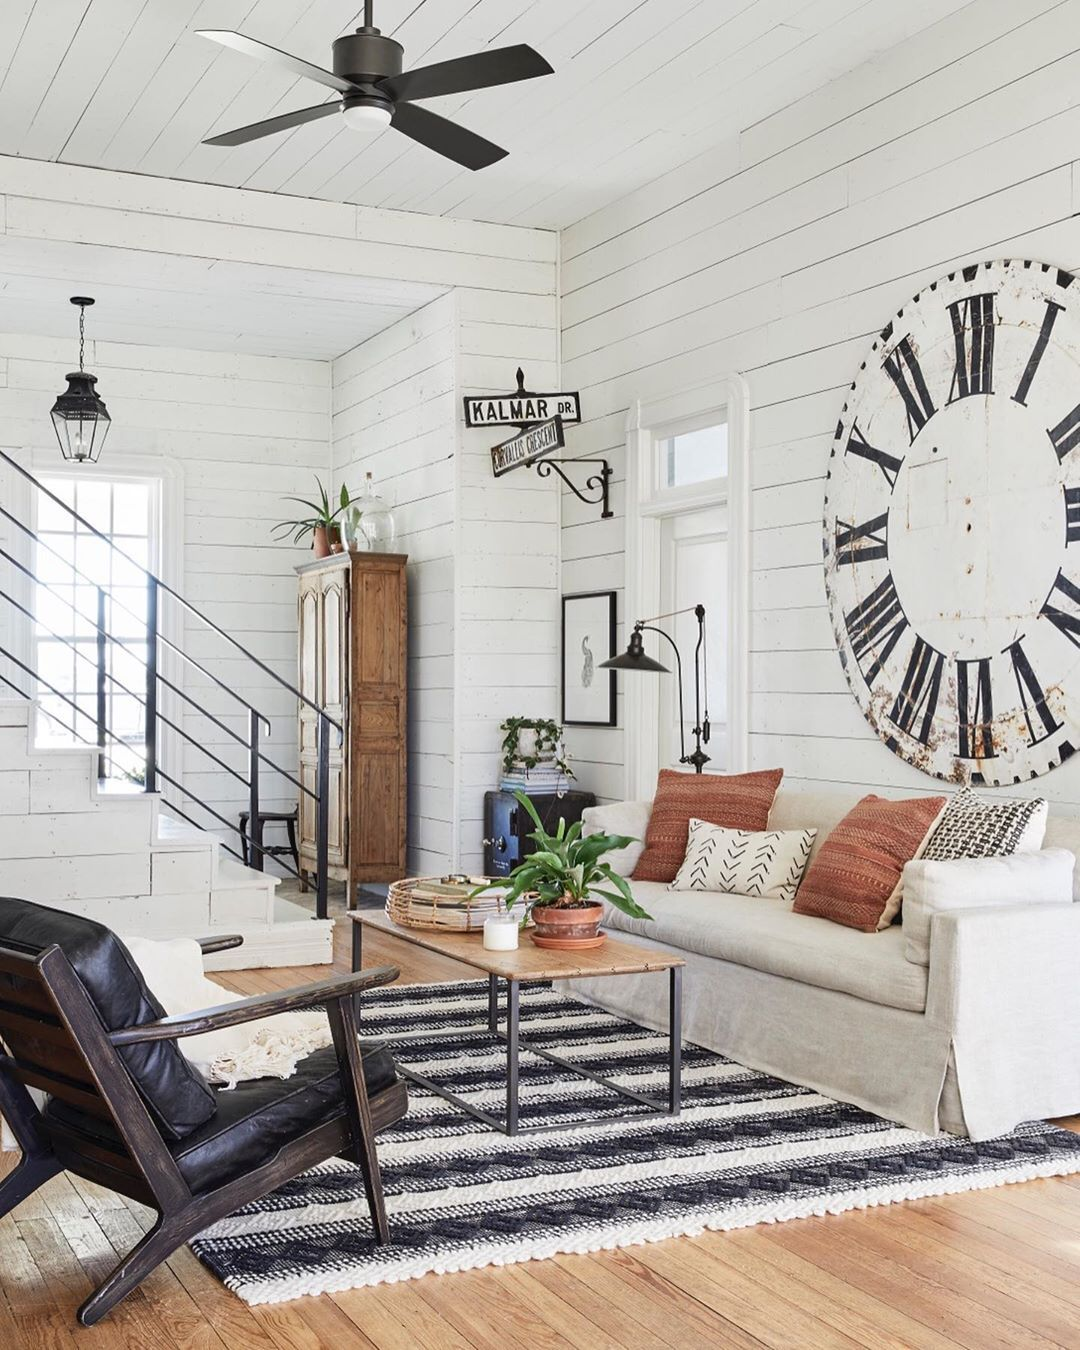 Magnolia On Instagram On The Blog Joannagaines Is Sharing Updated Photos Of The Farmh Joanna Gaines Dining Room Living Room Fans Joanna Gaines Living Room